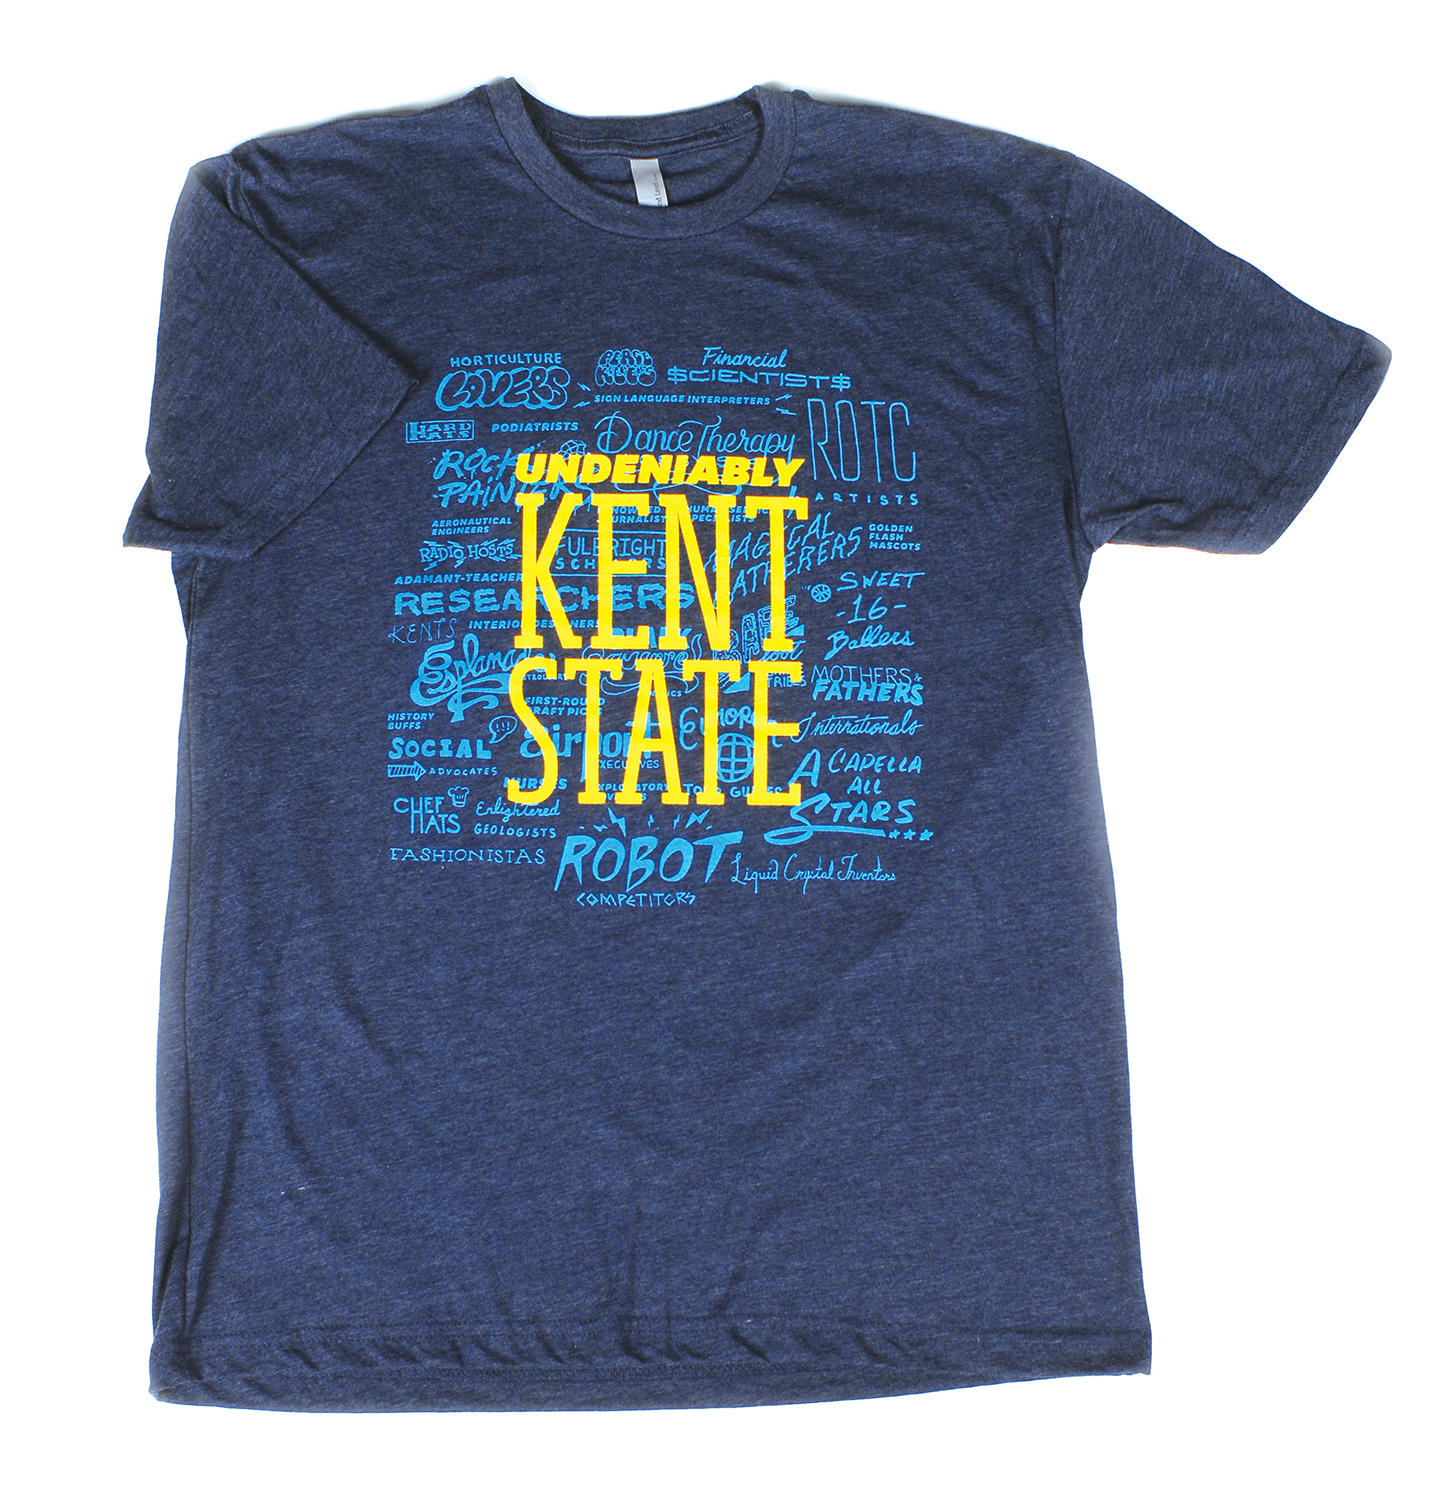 Undeniably Kent State shirt given out at the launch event on February 1